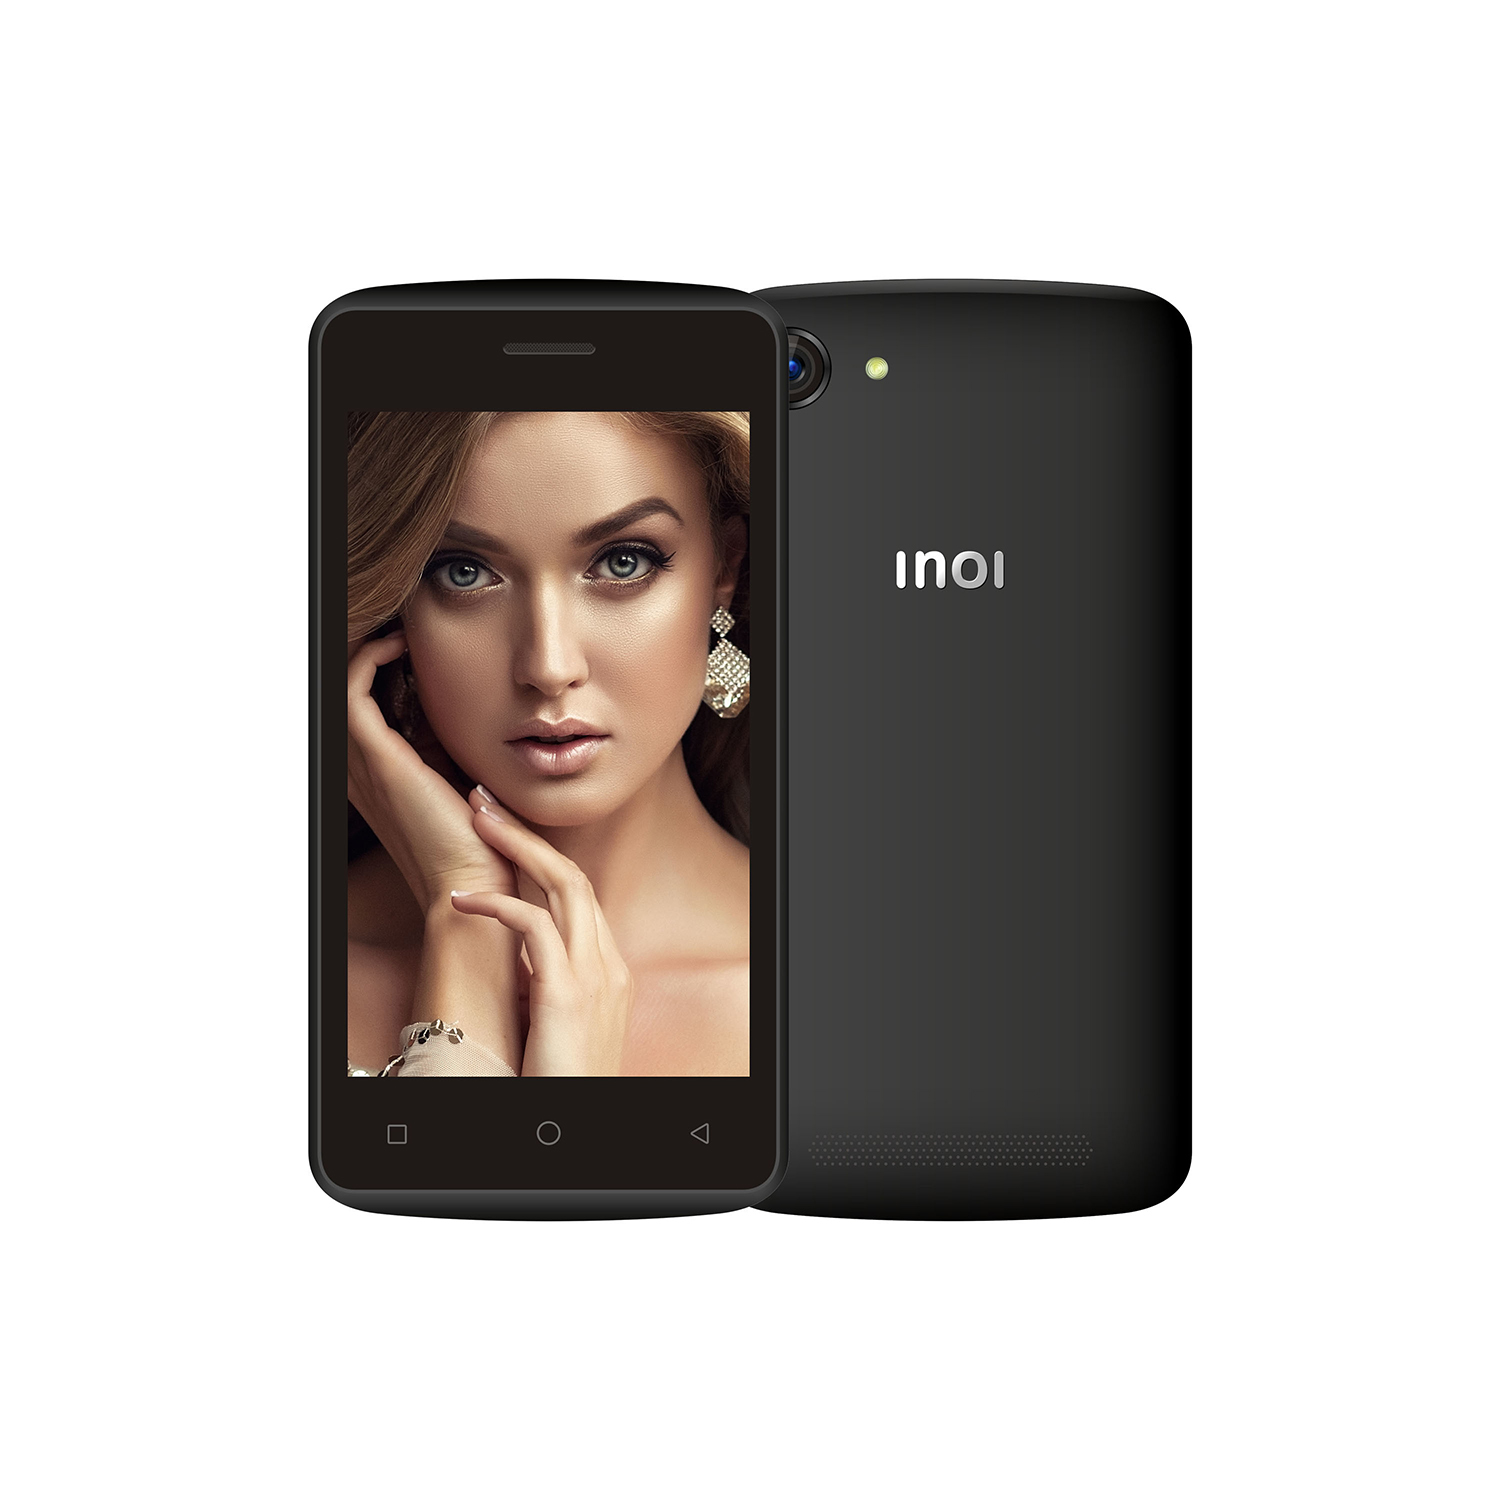 Фото - Смартфон INOI 1 Lite Black смартфон inoi 2 1 8gb black